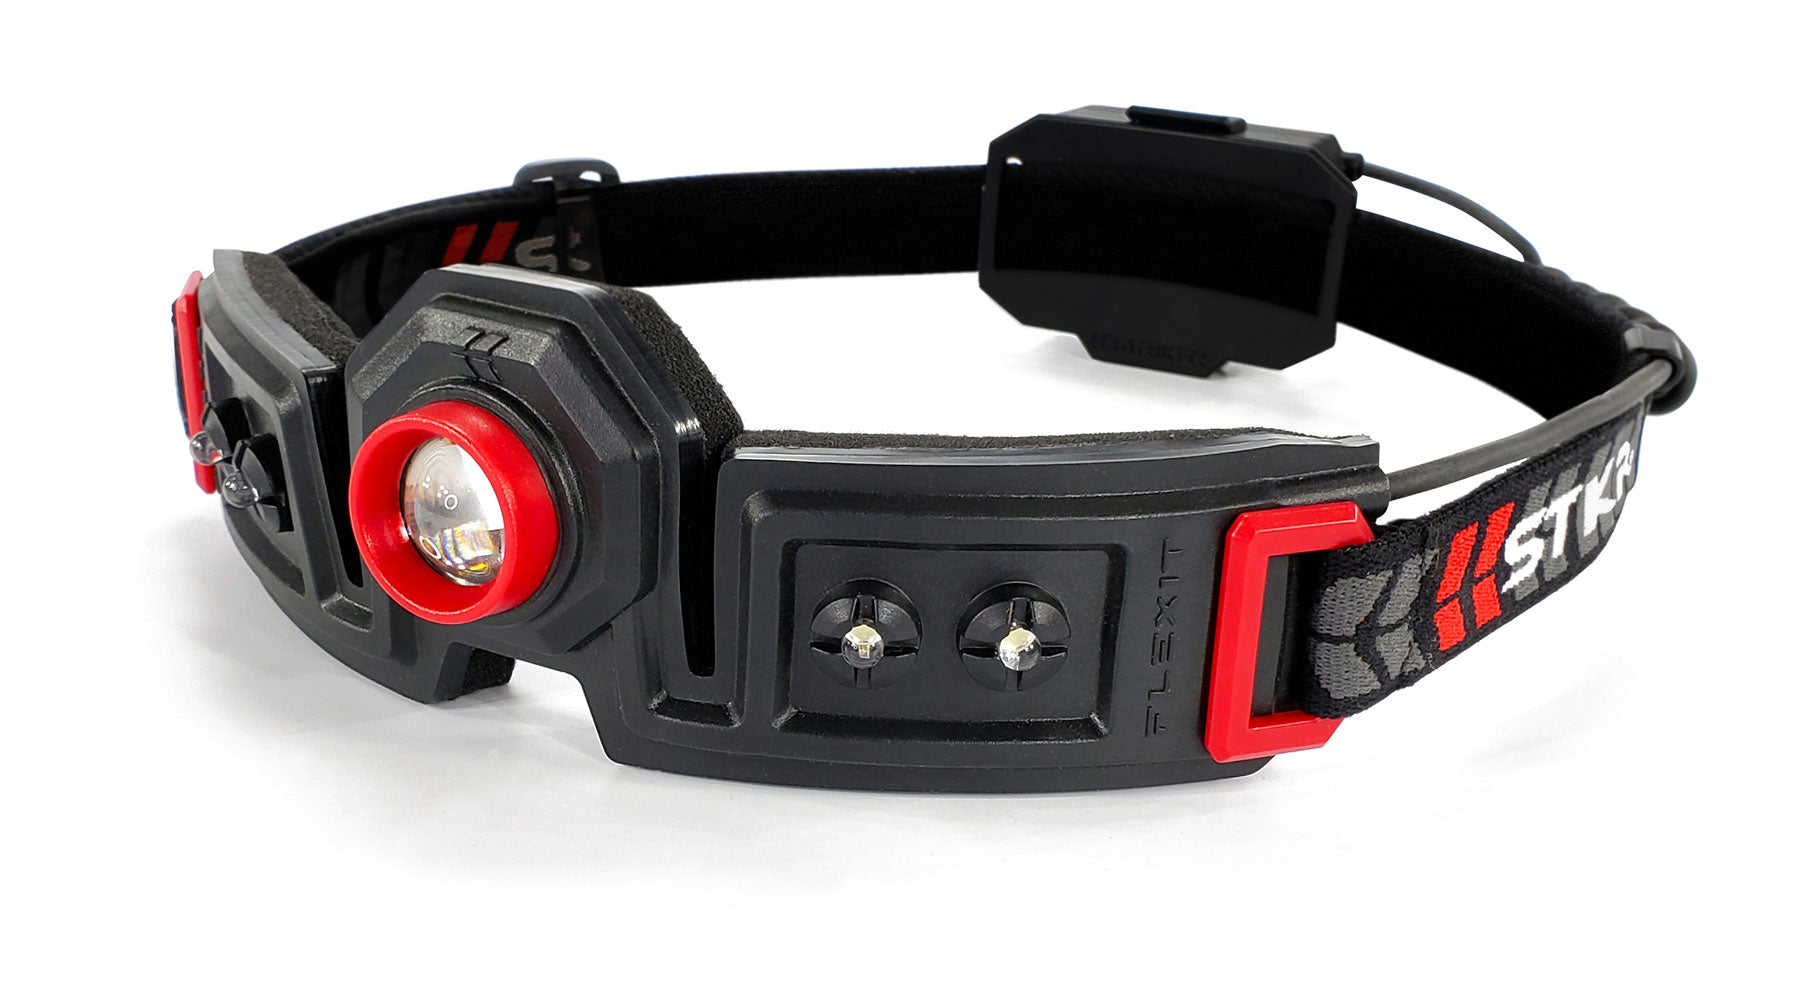 The STKR Concepts FLEXIT Headlamp 2.5